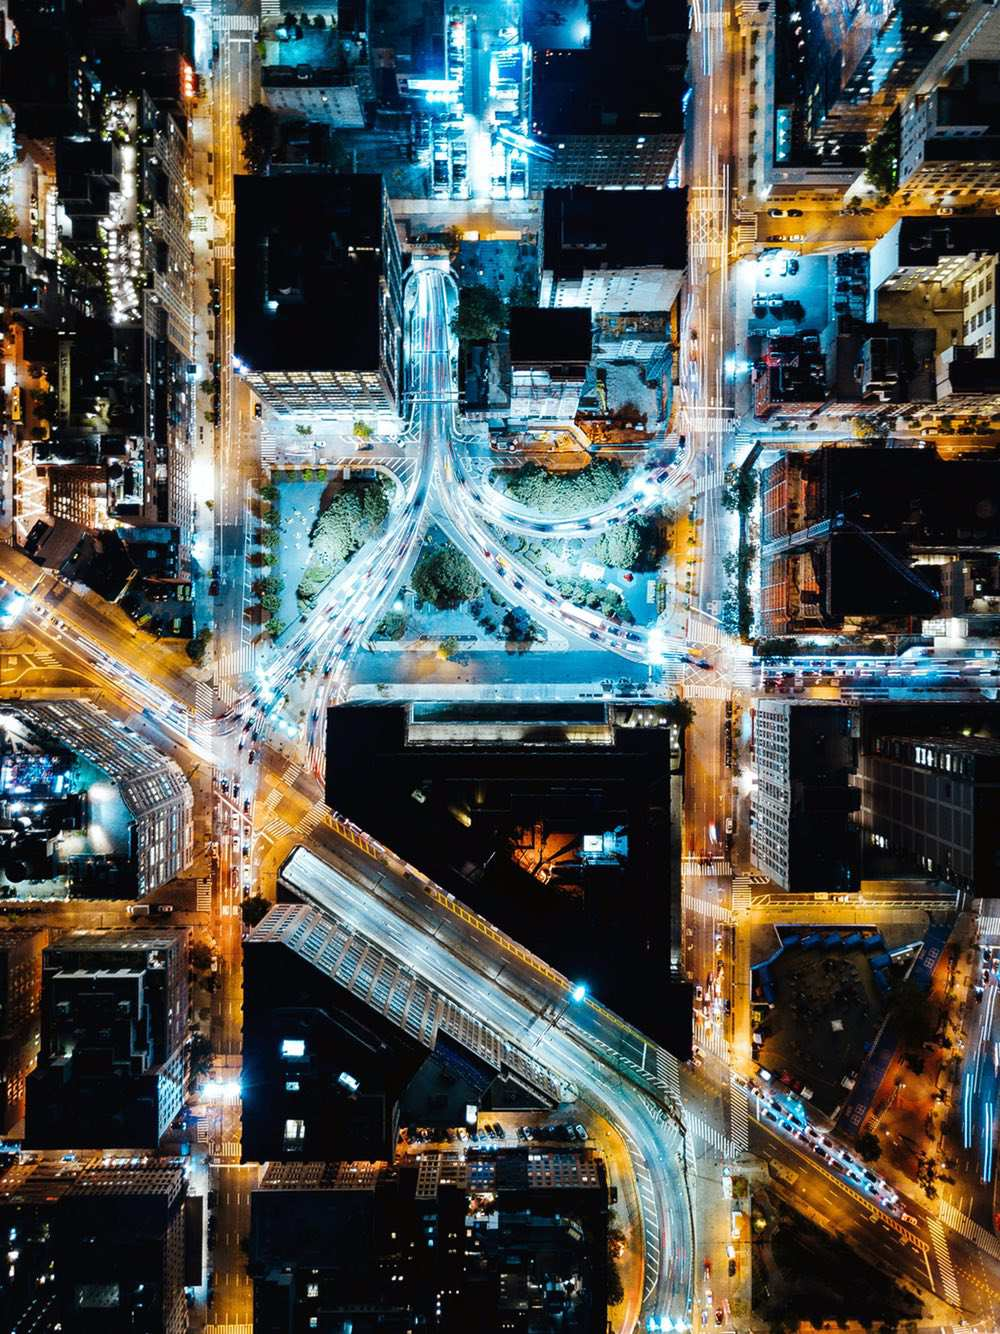 Holland Tunnel - Amazing drone photos of New York City looking straight down 0003